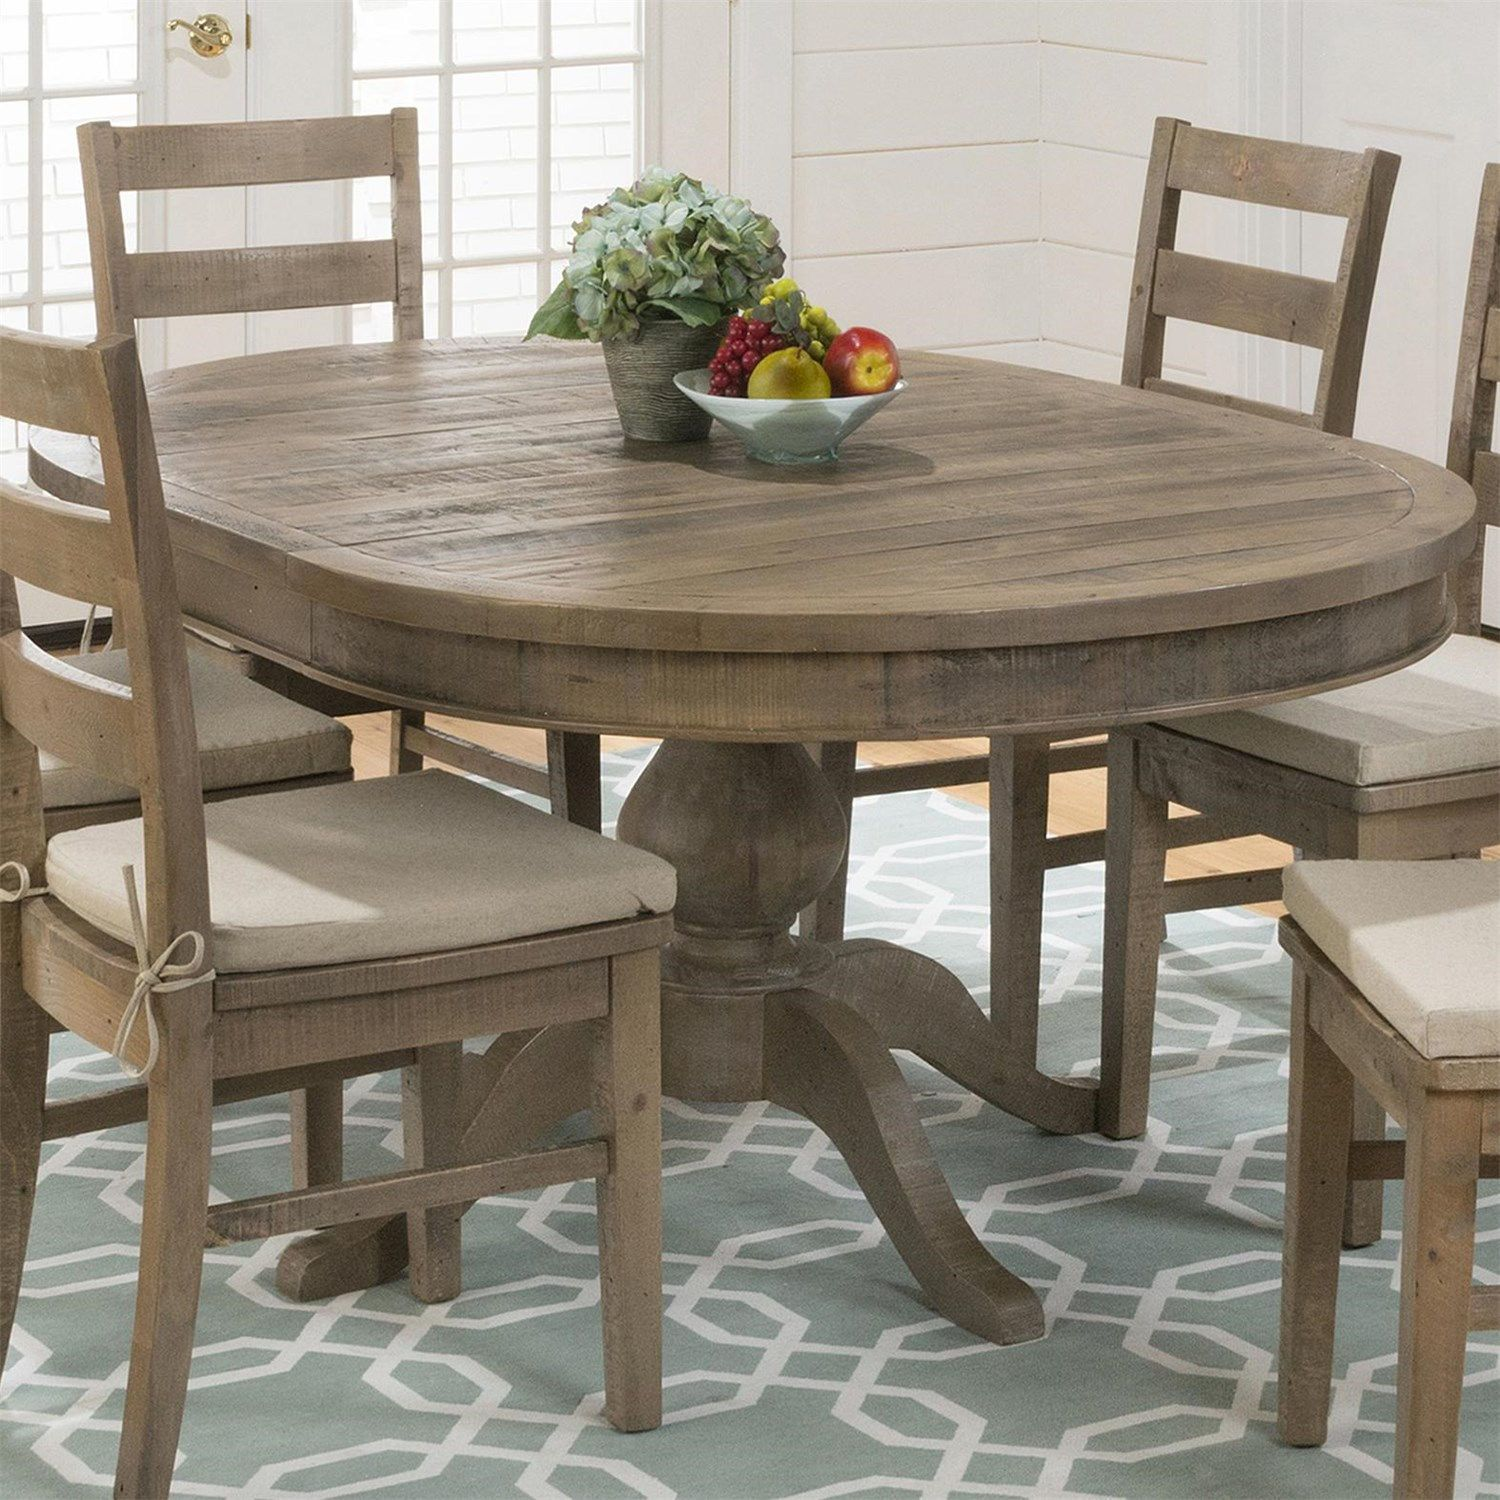 Jofran 941 66 slater mill pine reclaimed pine round to oval dining table